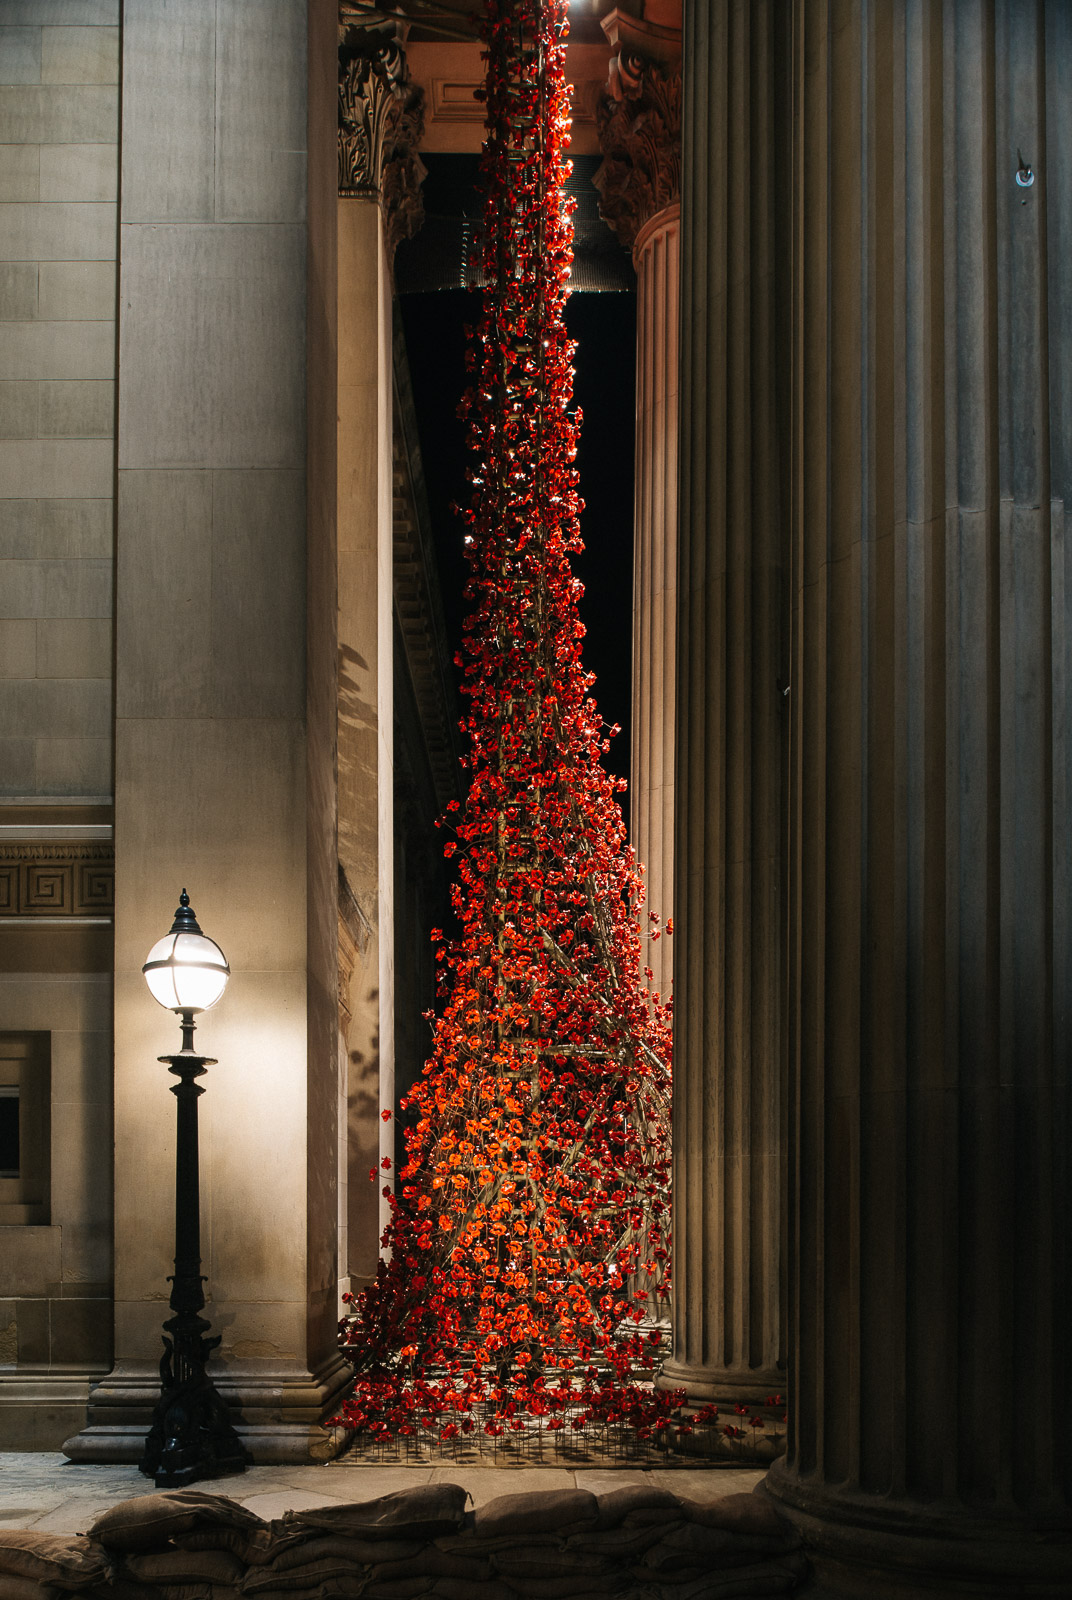 poppies-st-georges-hall-liverpool-3175-pete-carr